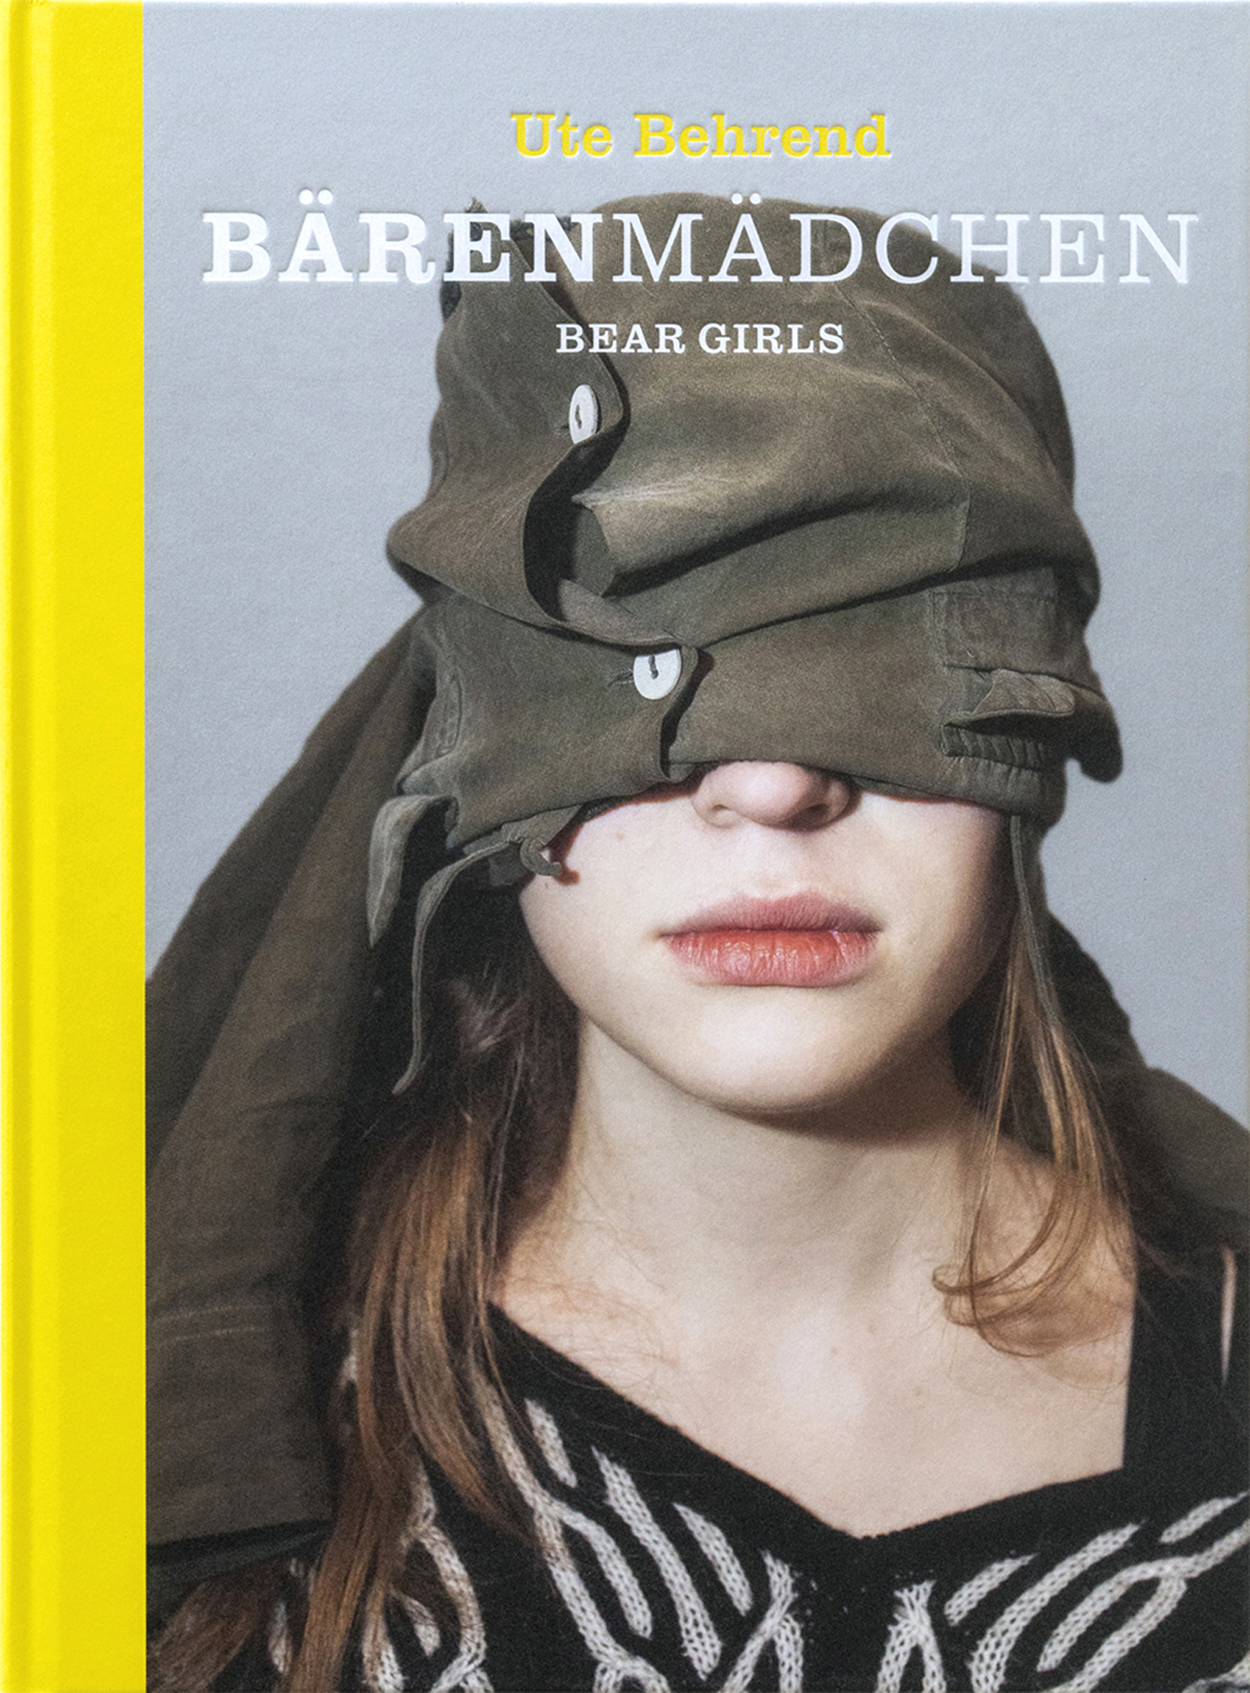 Ute Behrend, Bärenmädchen | Beargirls 2019, Hardcover, thread-stitching, blind embossing, 22 x 29,7 cm, 128 pages, 96 coloured and 1 b/w-illustration, German, English, Edition of 549 Ex., Price 45€ ISBN 978-3-948059-00-2